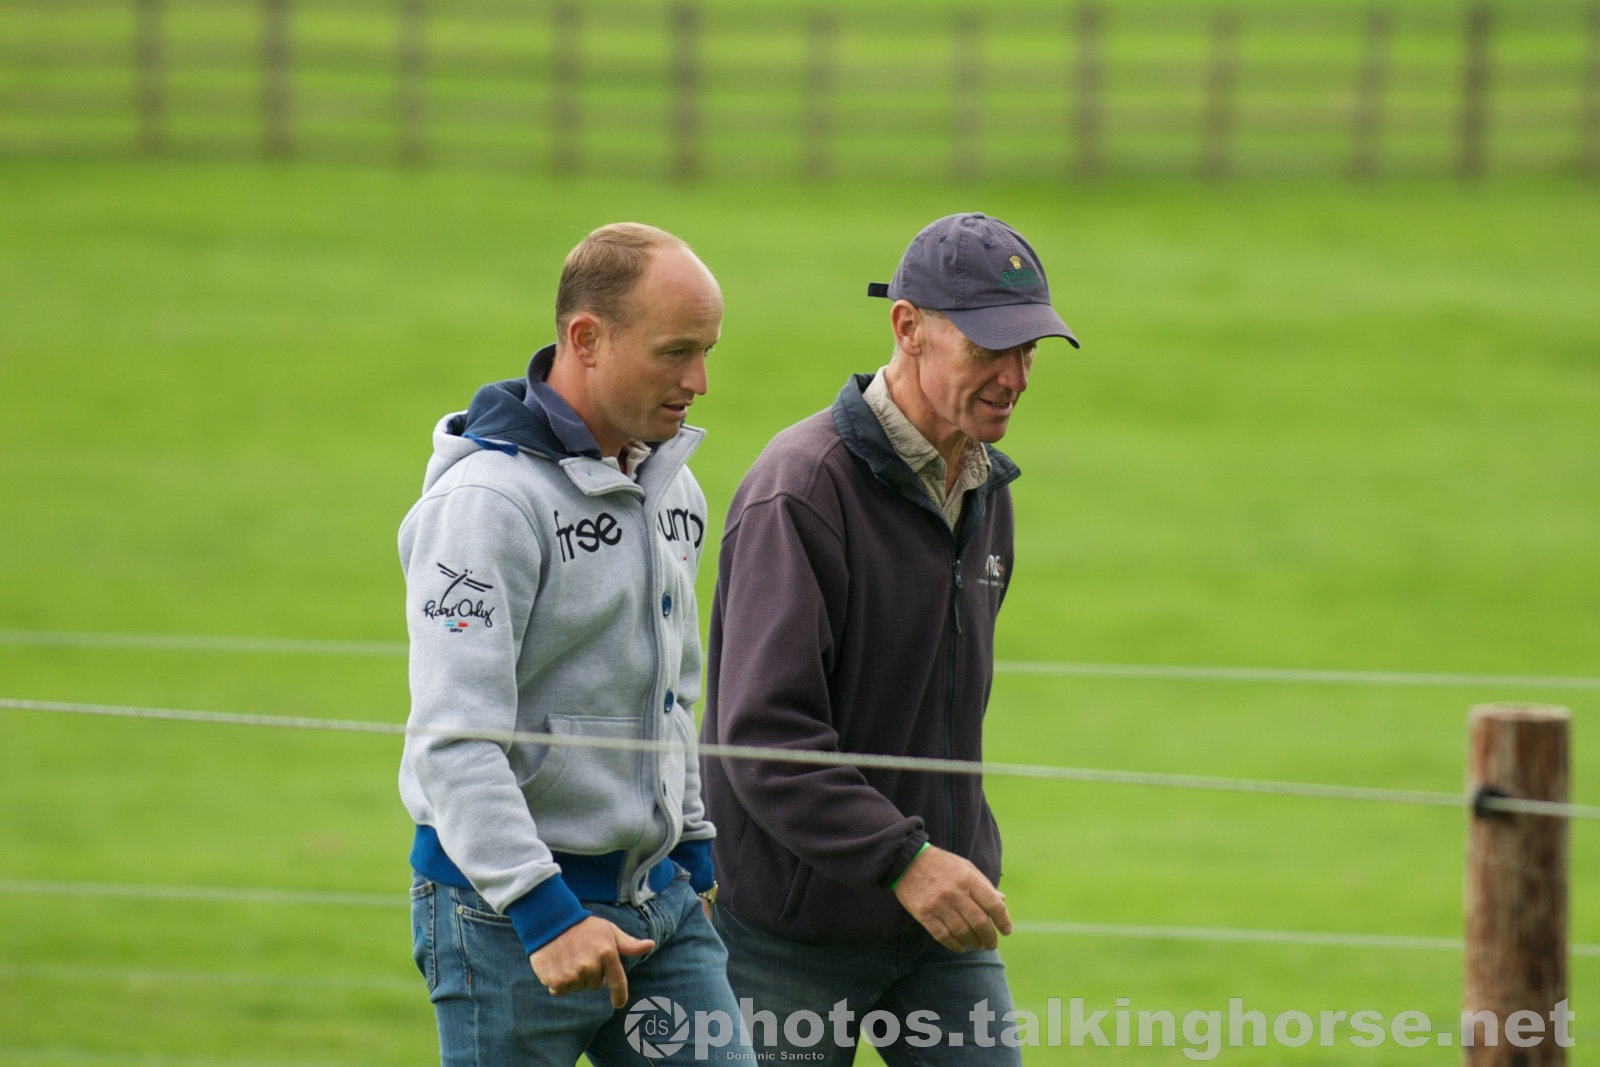 Michael Jung Walking The Course With Chris Bartle